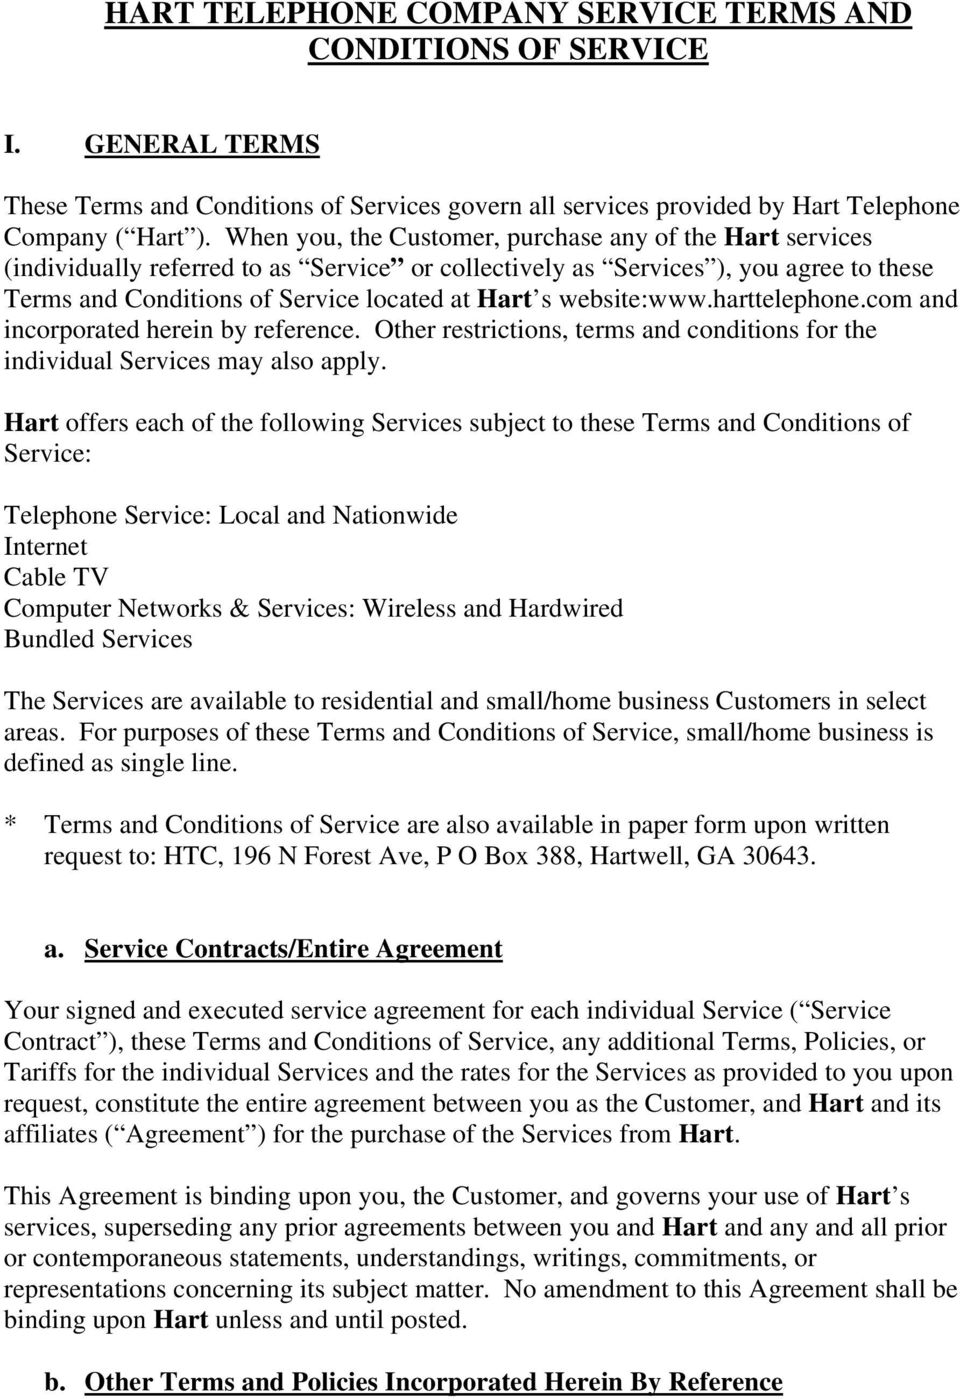 website:www.harttelephone.com and incorporated herein by reference. Other restrictions, terms and conditions for the individual Services may also apply.